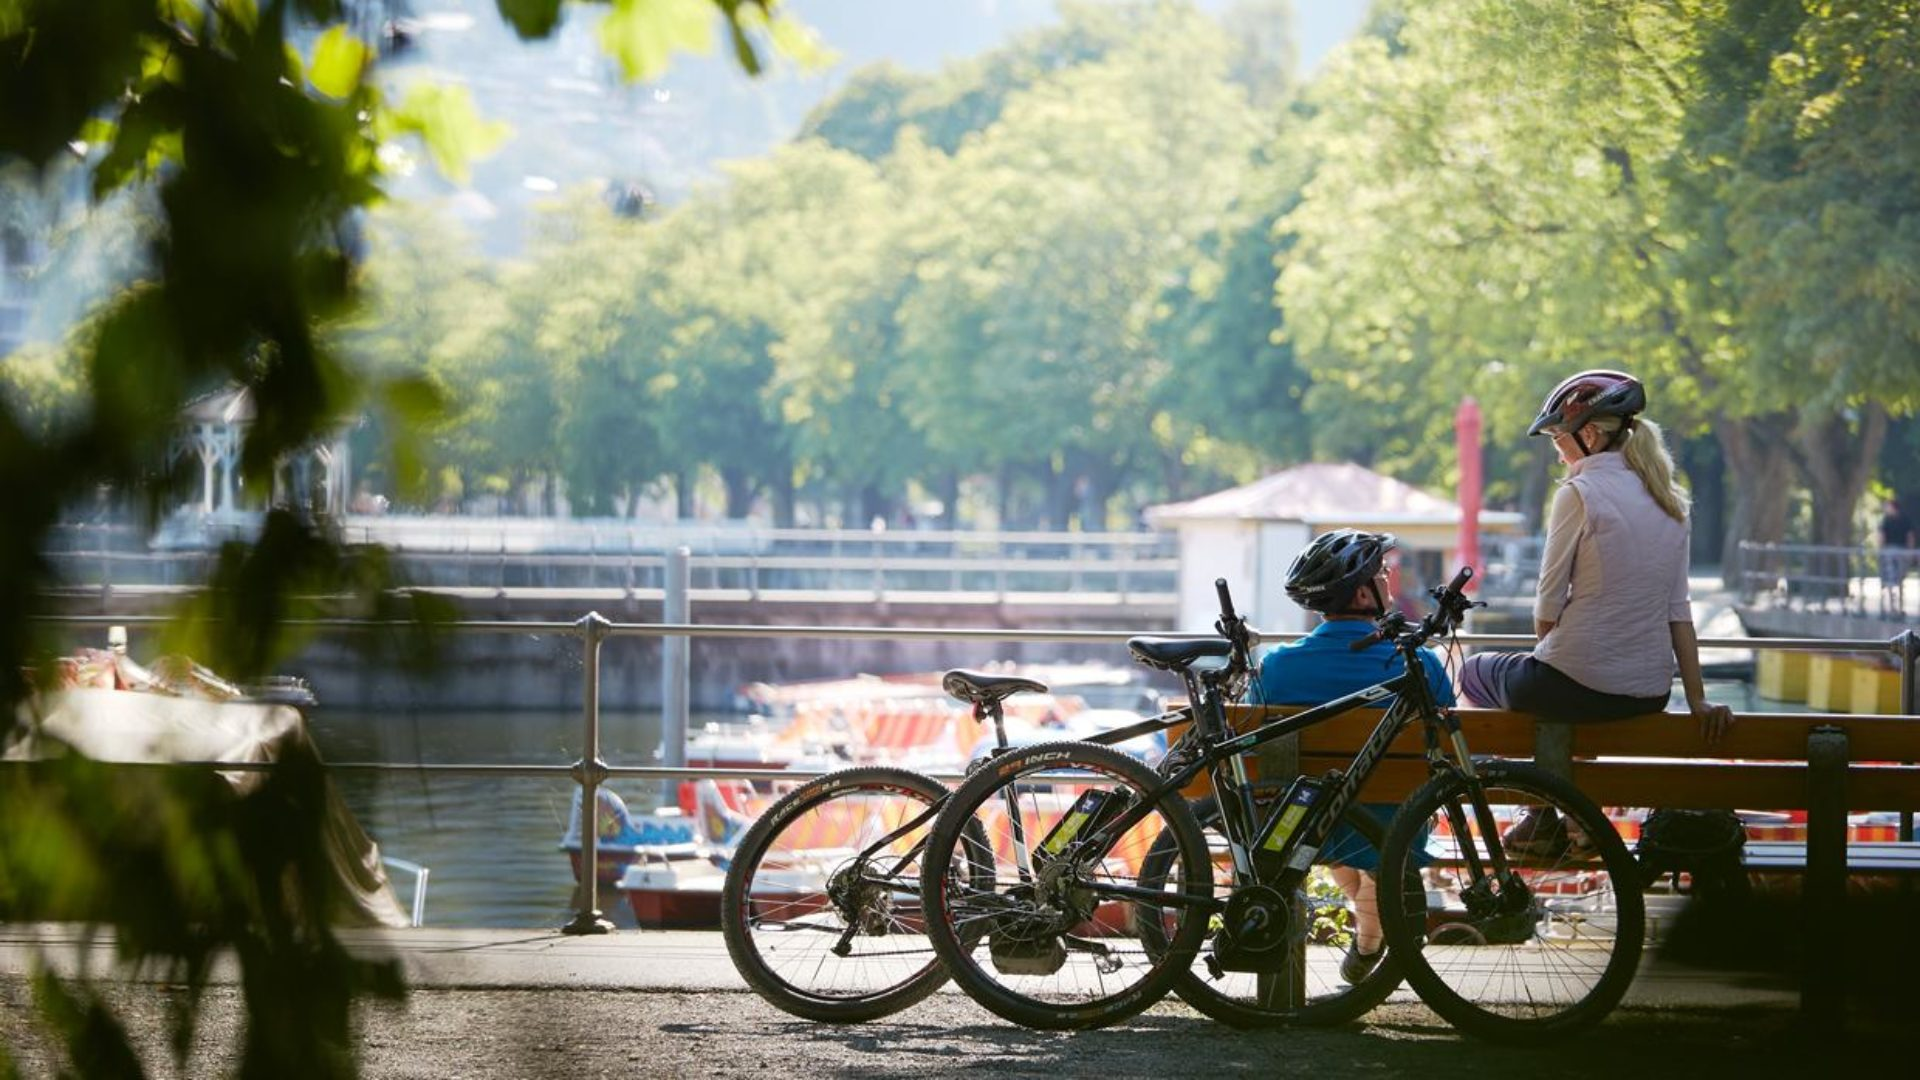 E Bike Tour From Lake Constance To The Silvretta Mountains